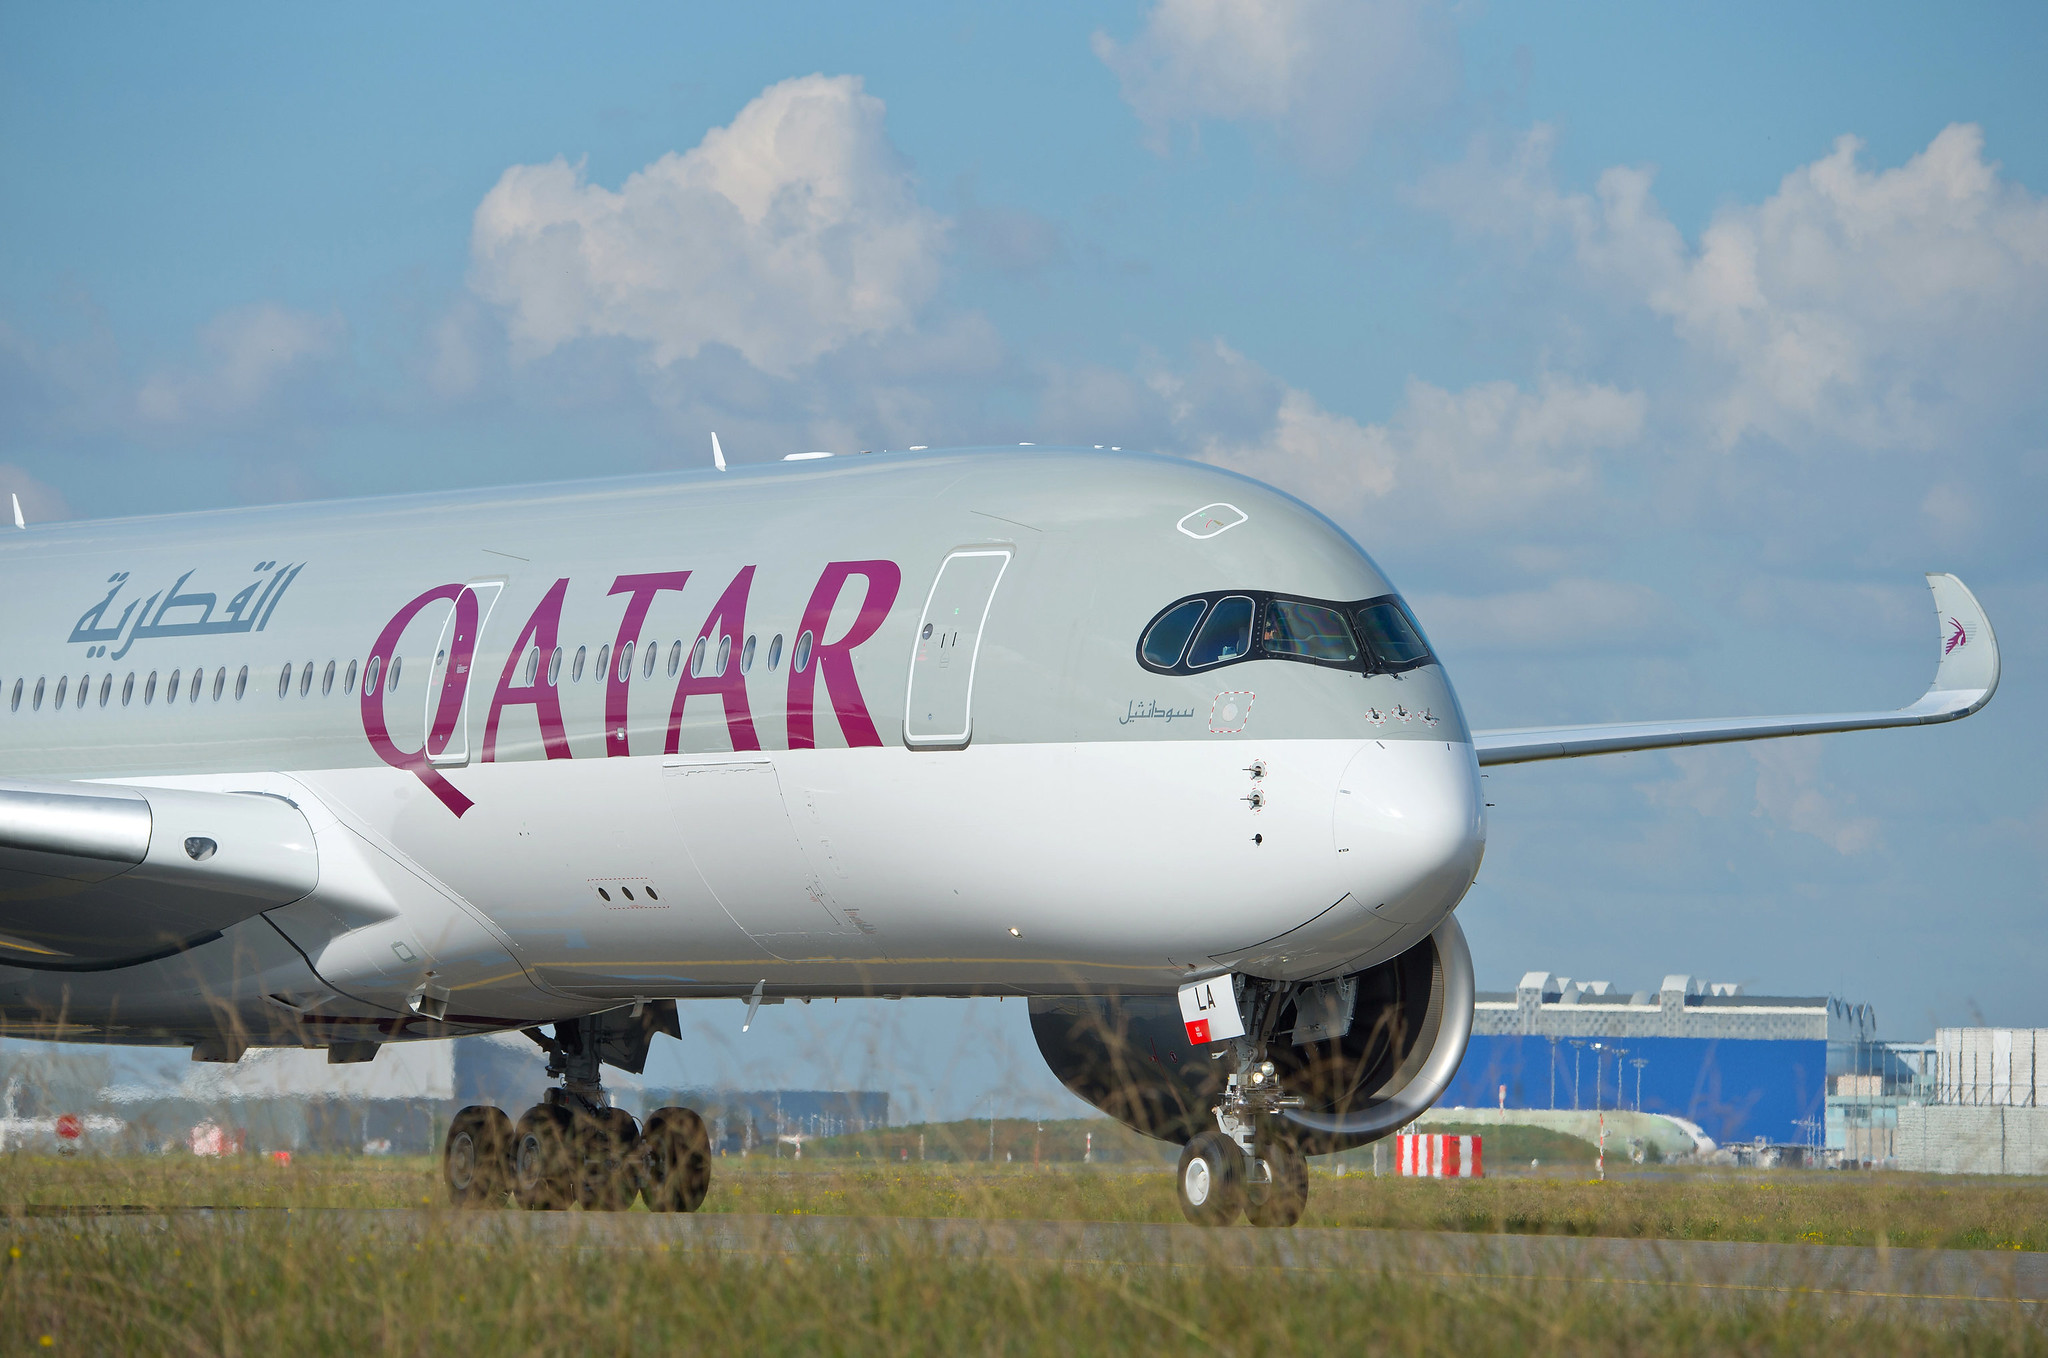 Qatar Airways starts flights to South Africa